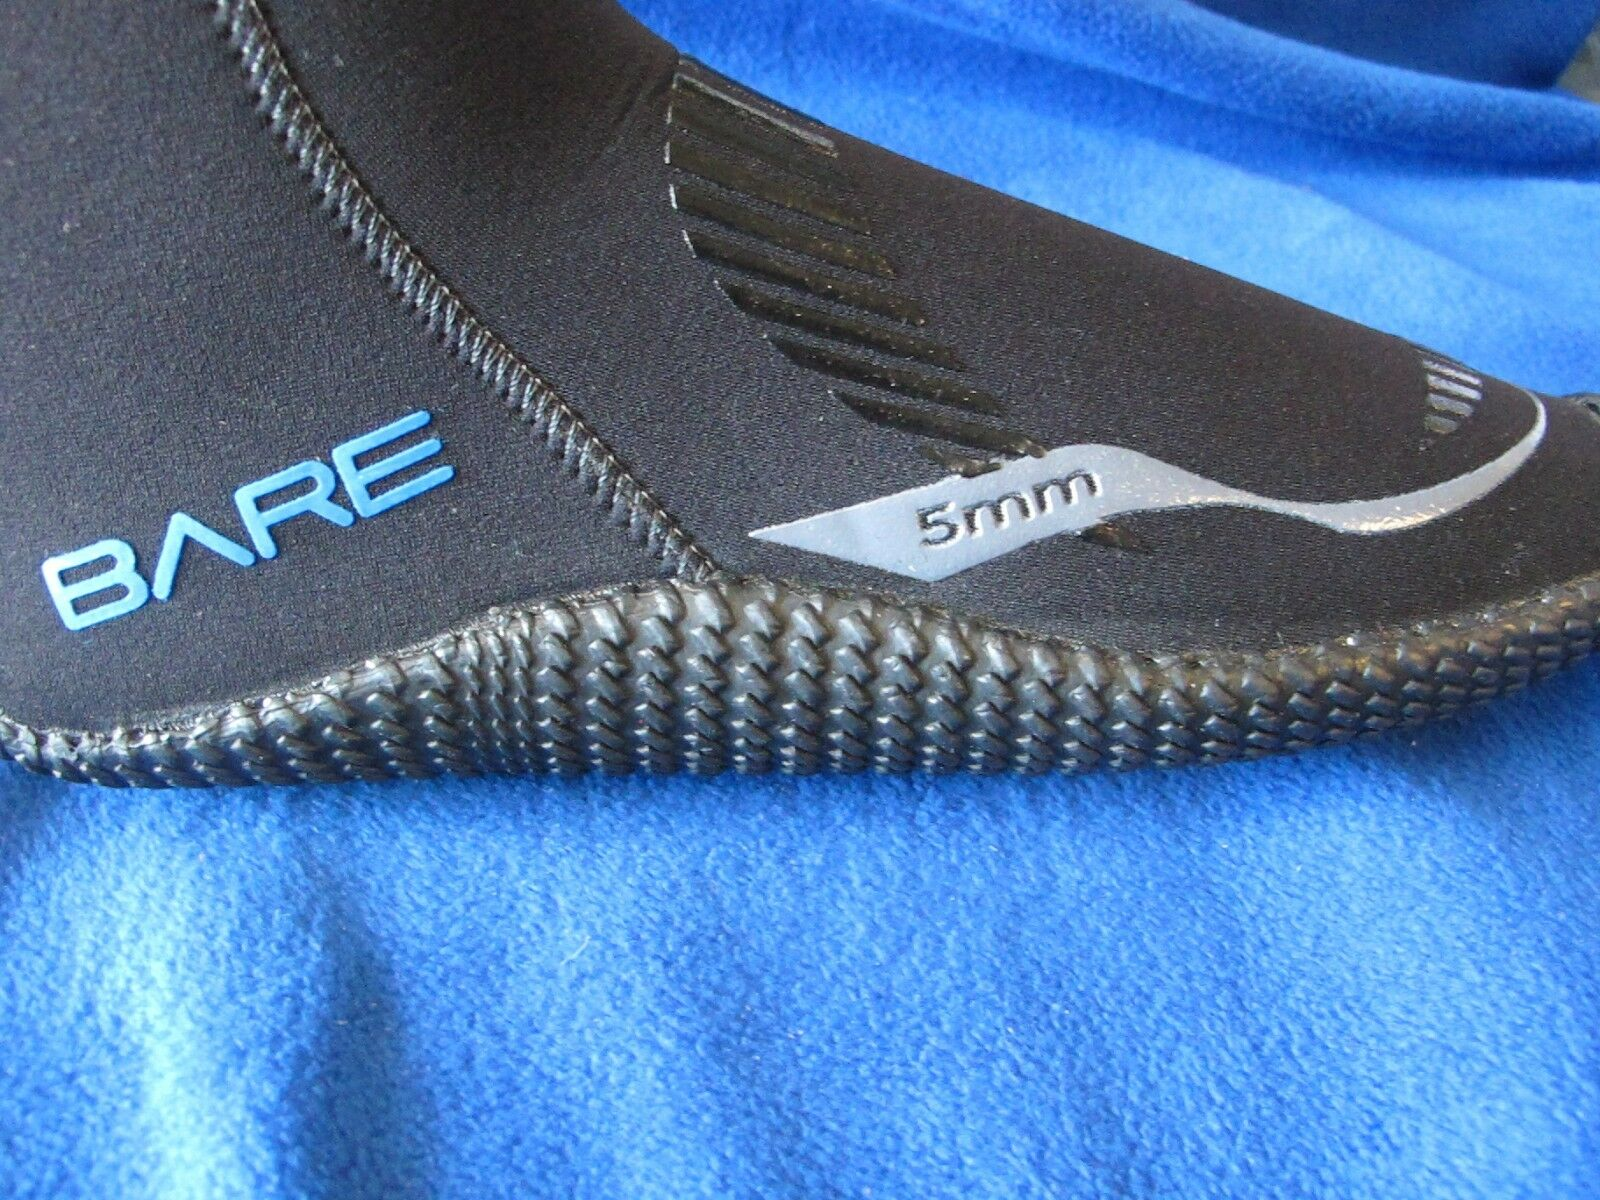 Bare 5mm water sport boot 2014 size 6